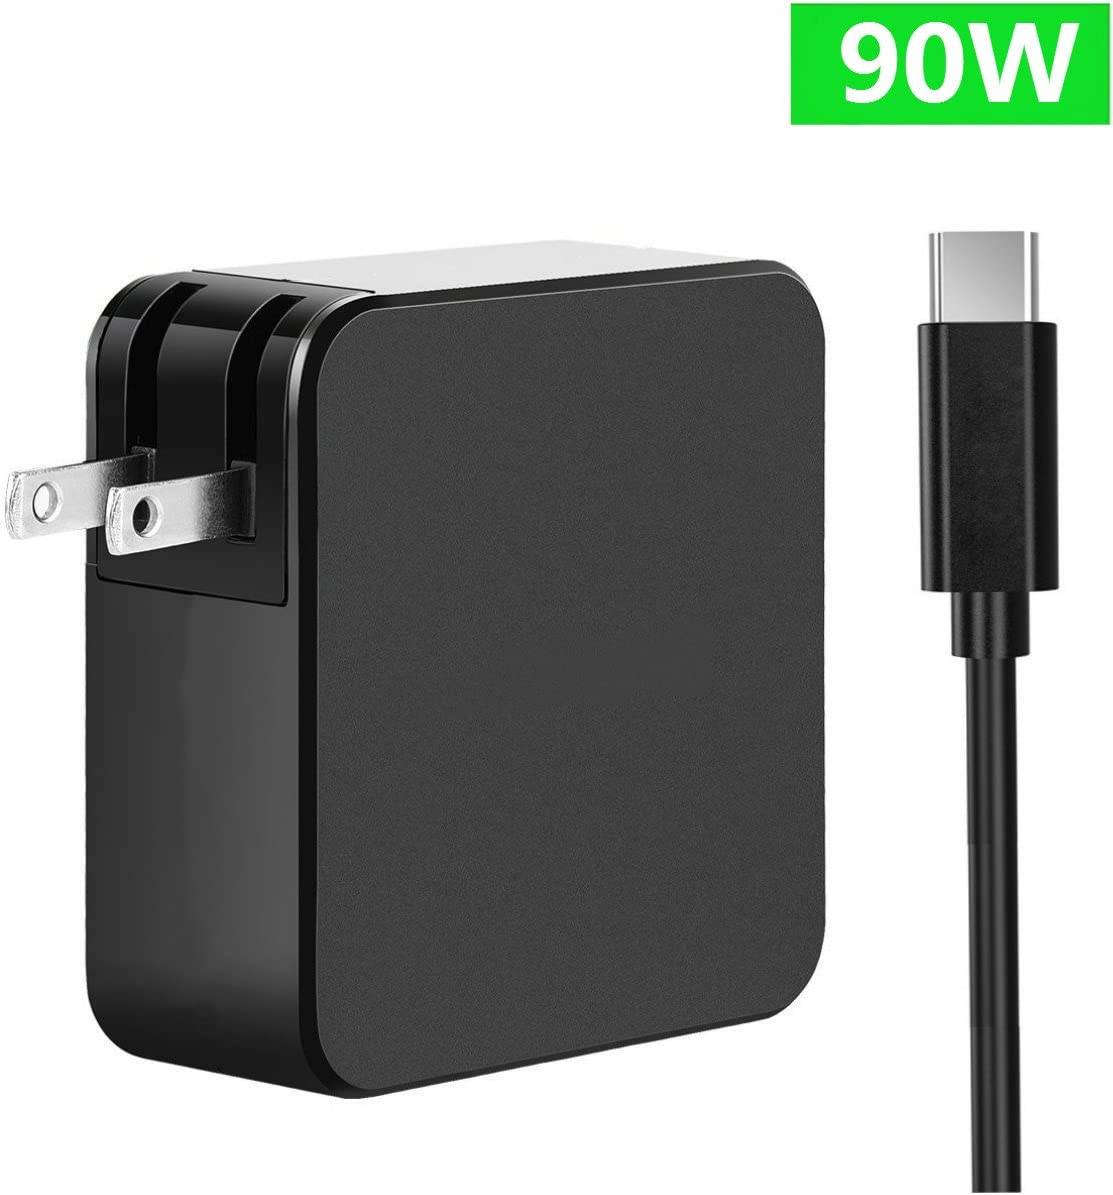 """USB C Type C Wall Charger for MacBook 2015/2016/MacBook Pro 12""""/13""""/15""""/ HP Spectre 13.3 inch/Dell XPS15 9550/Razer Blade/Nintendo Switch and More"""